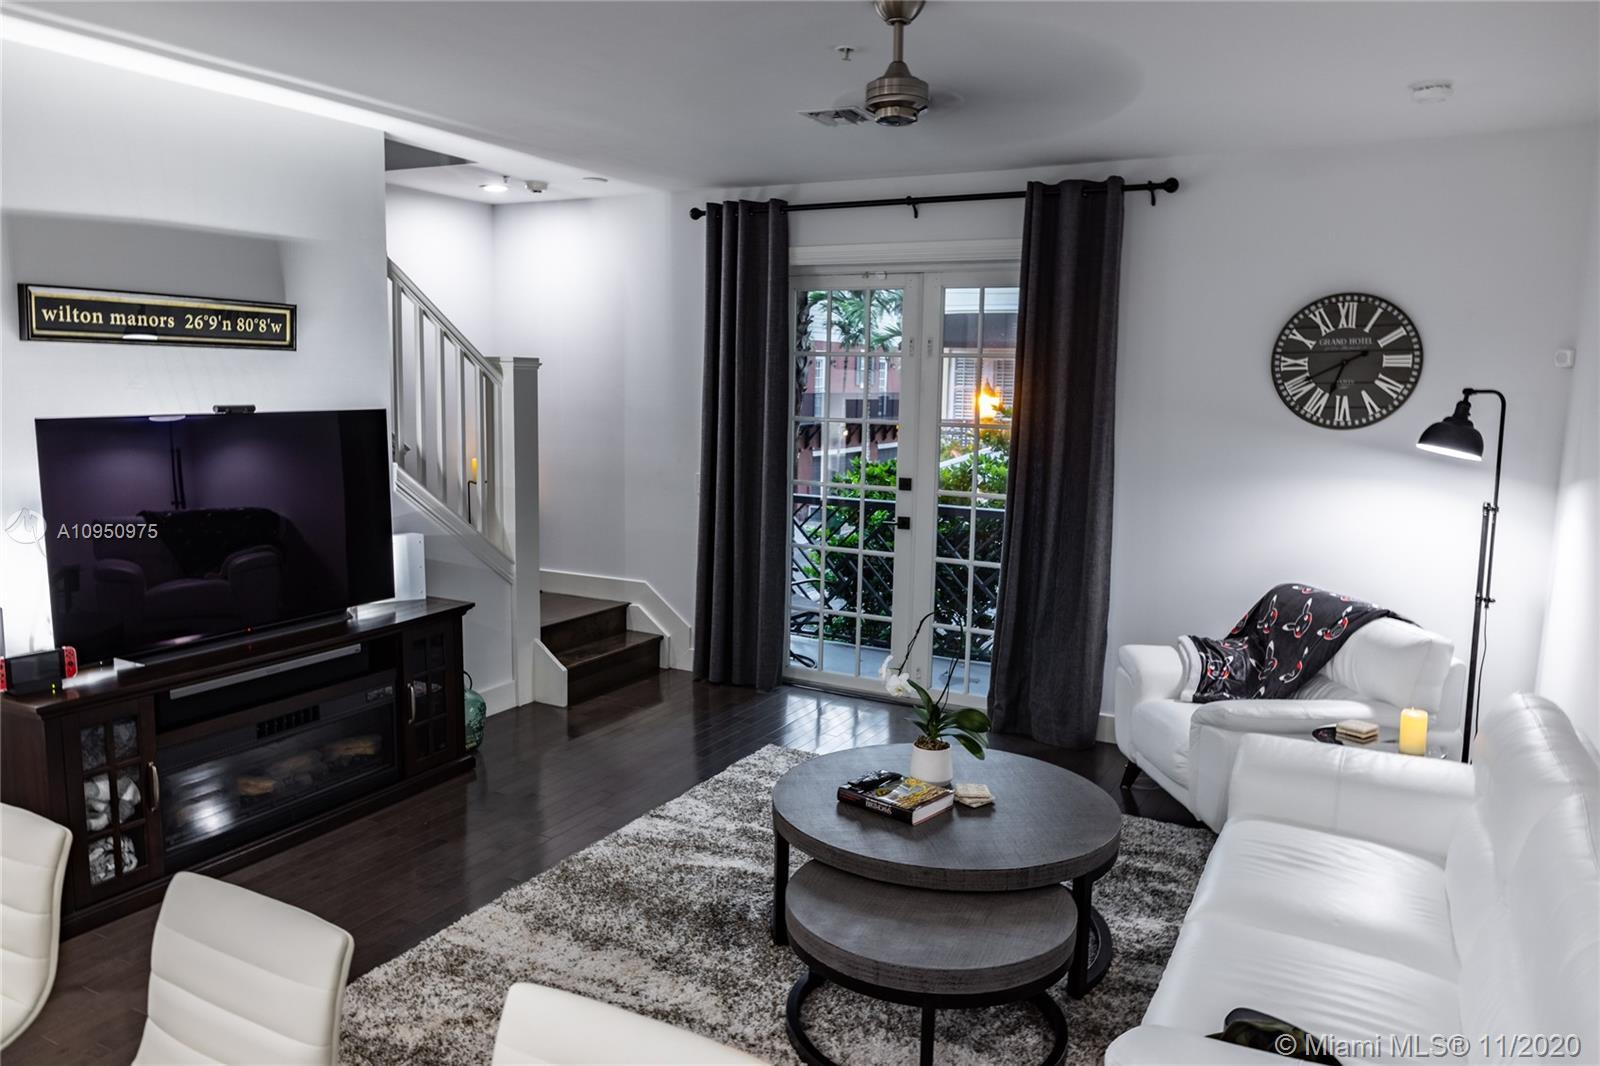 Perfect location, walk to everything The Drive has to offer... and still close to beaches, downtown